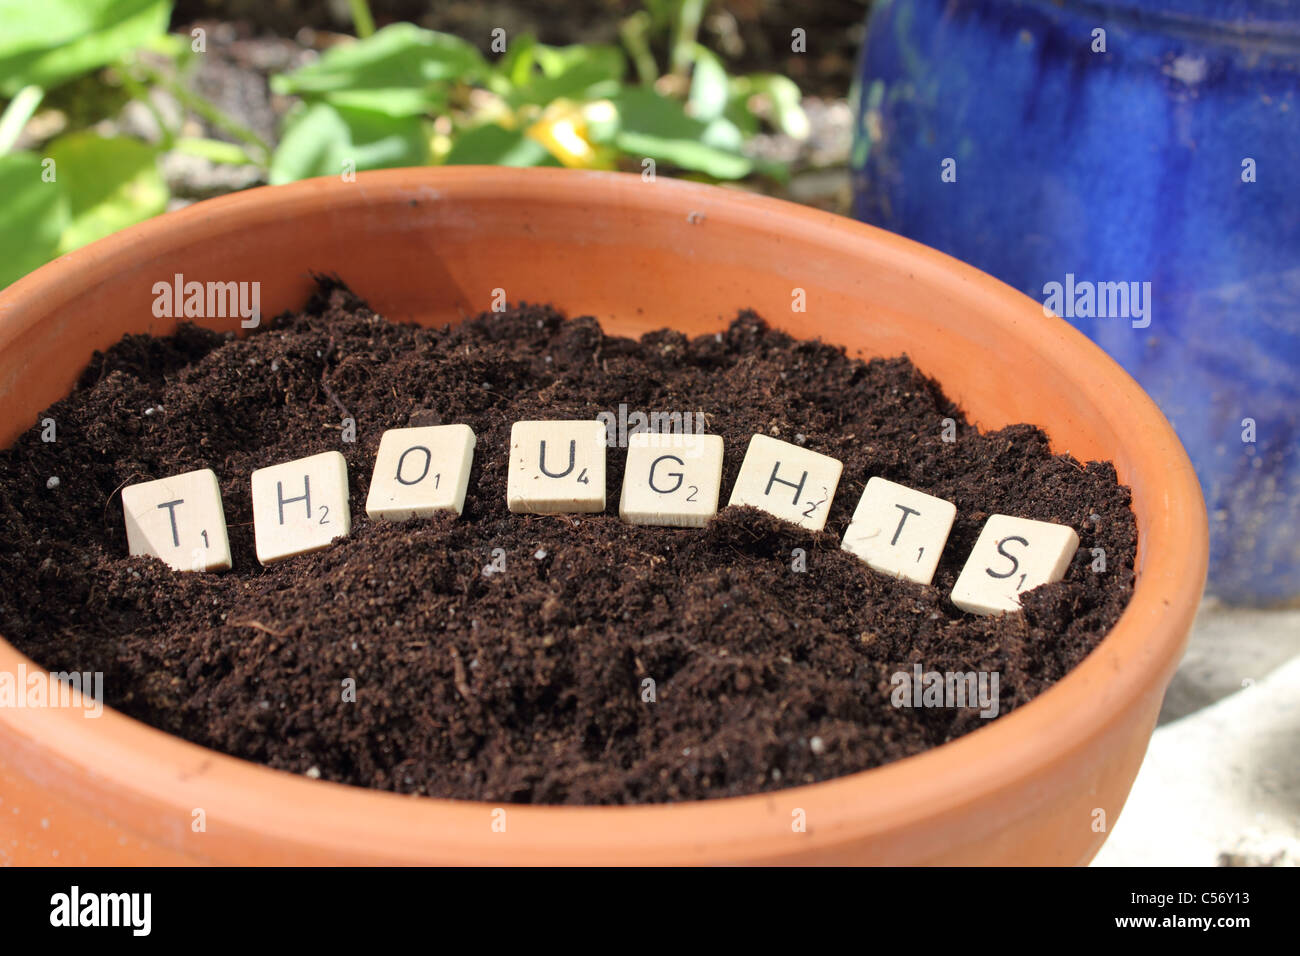 the word THOUGHTS in a pot with earth - planting thoughts - Stock Image